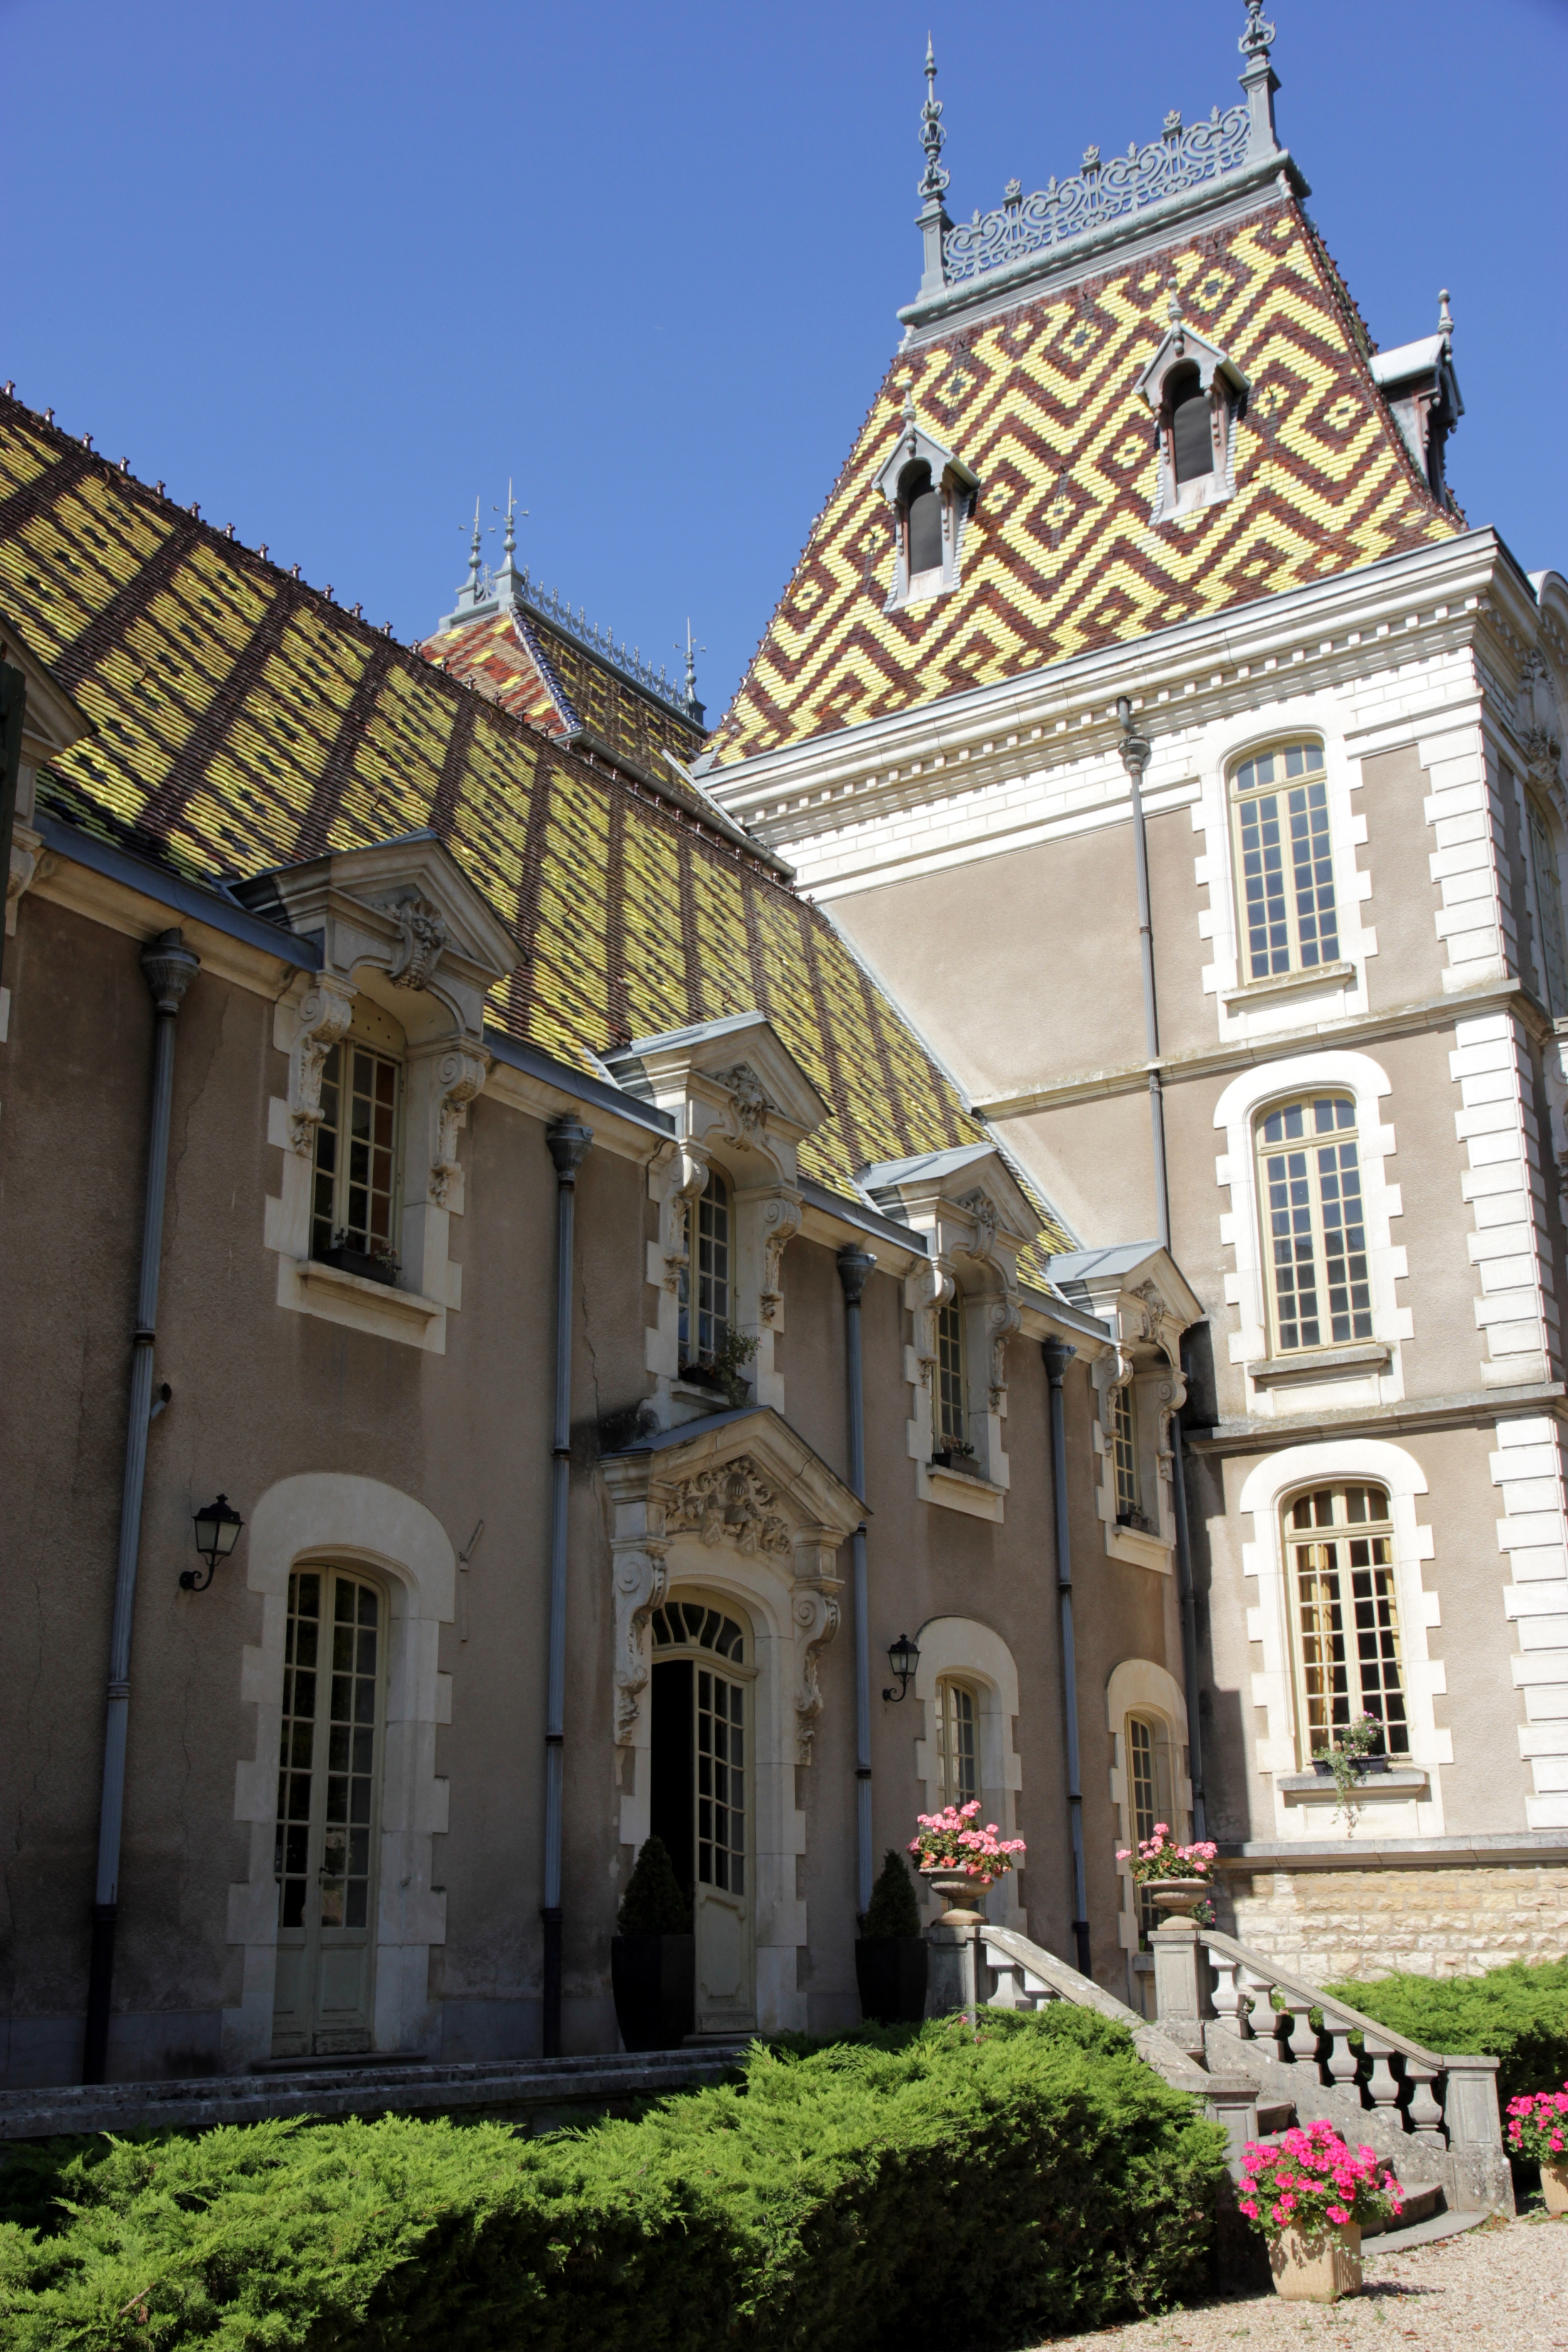 The Château Corton André with its glazed tile roof.